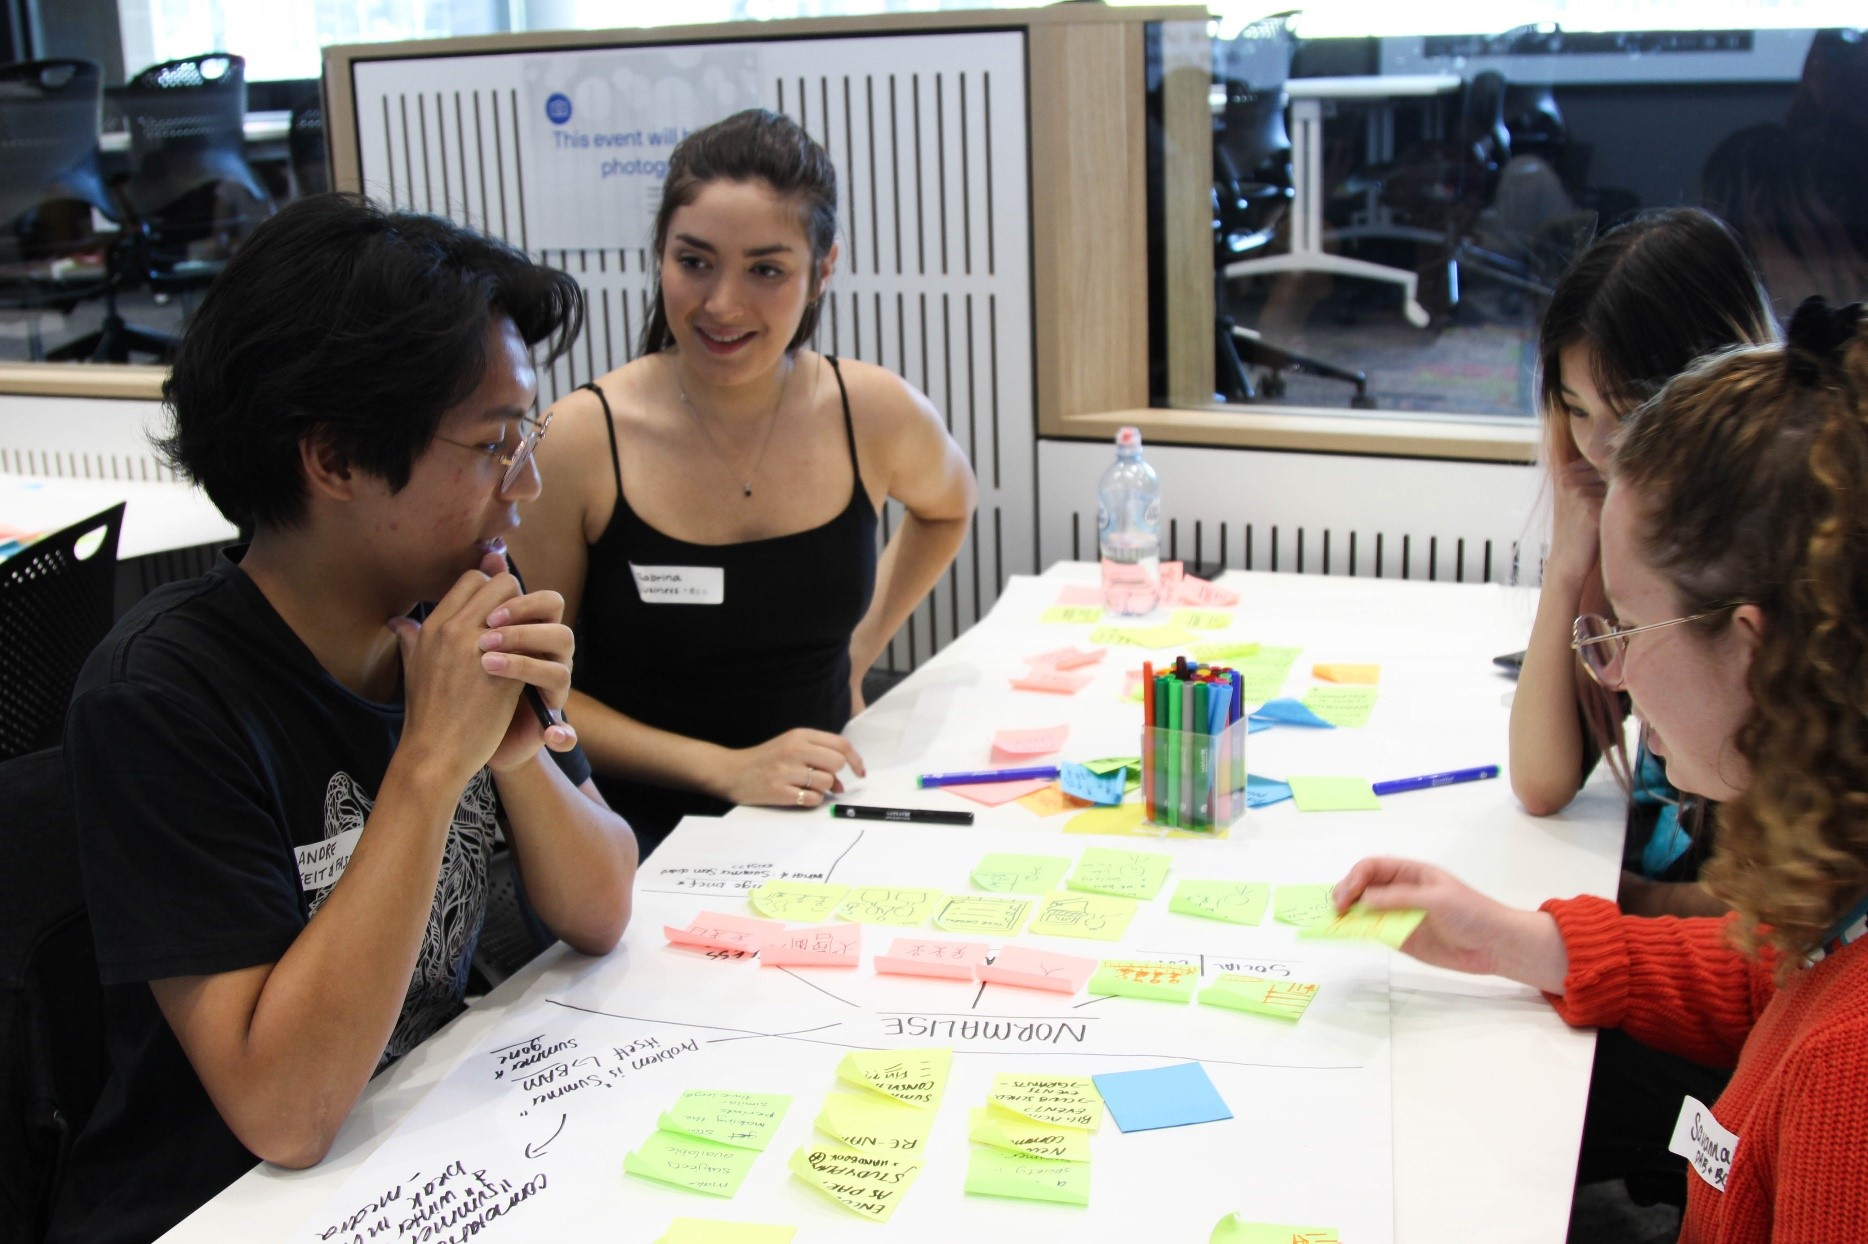 Students around a table in discussion